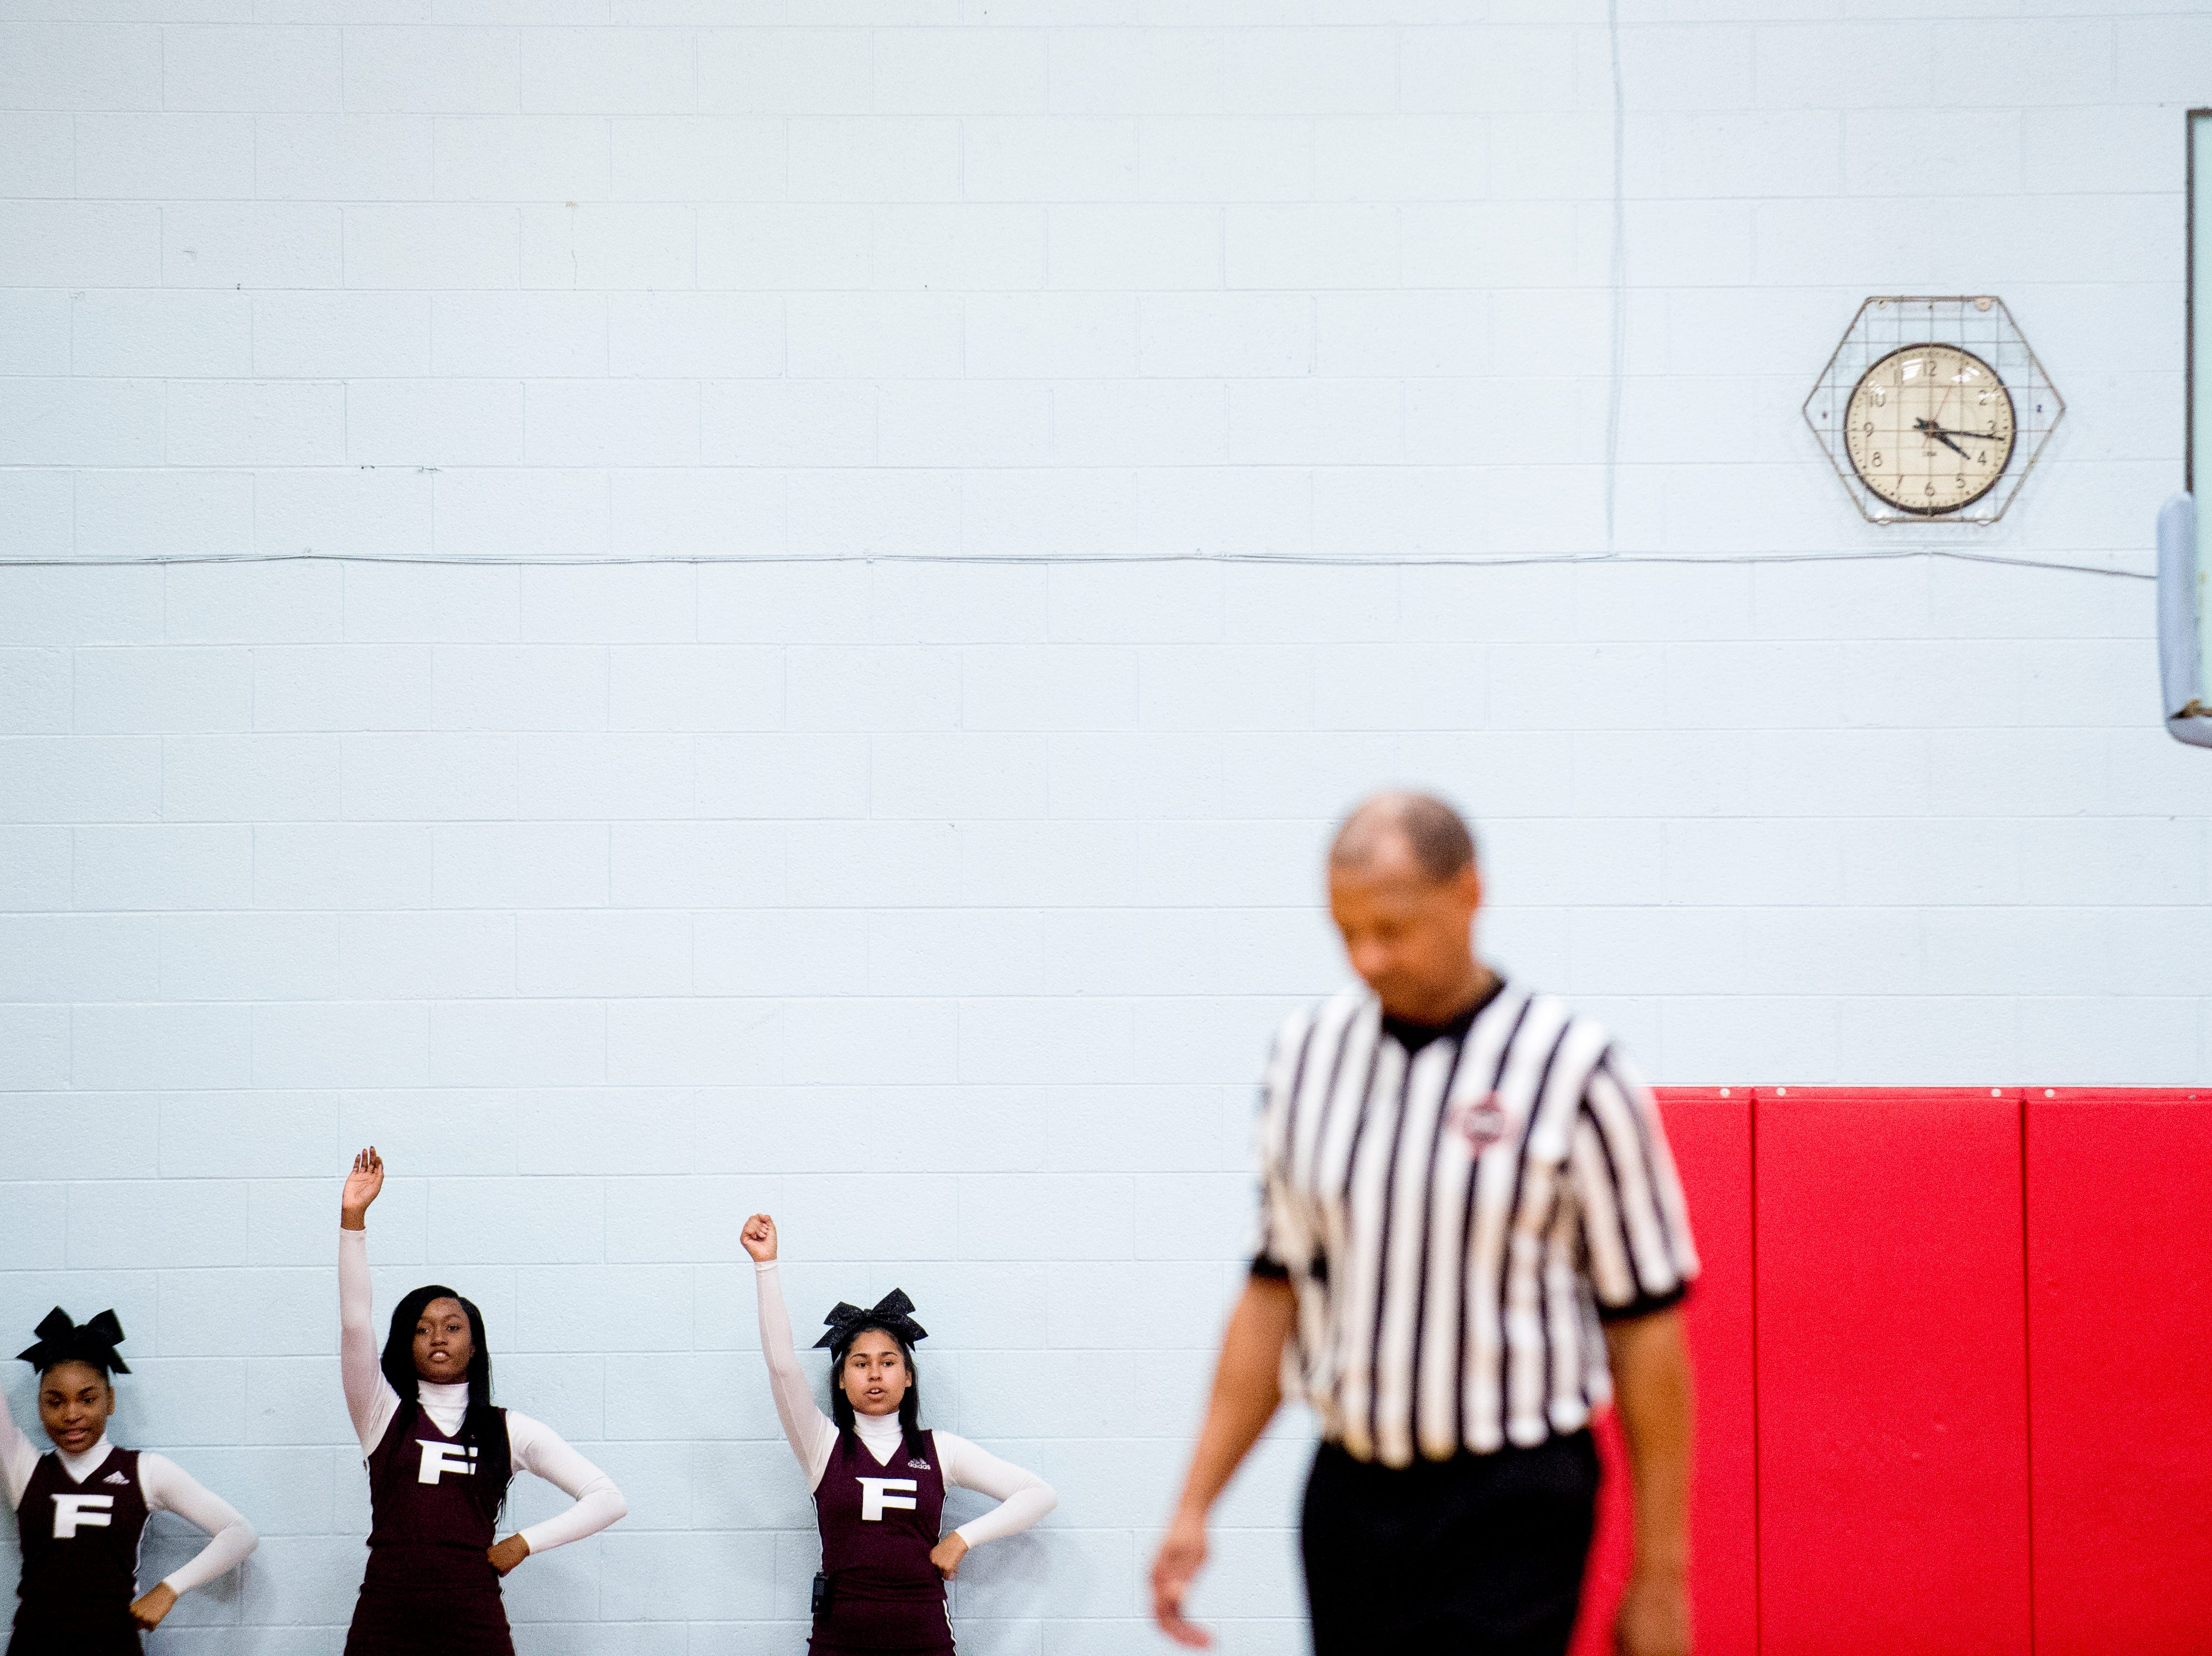 Fulton cheerleaders chant during a game between Austin-East and Fulton at Austin-East High School in Knoxville, Tennessee on Saturday, January 5, 2019.